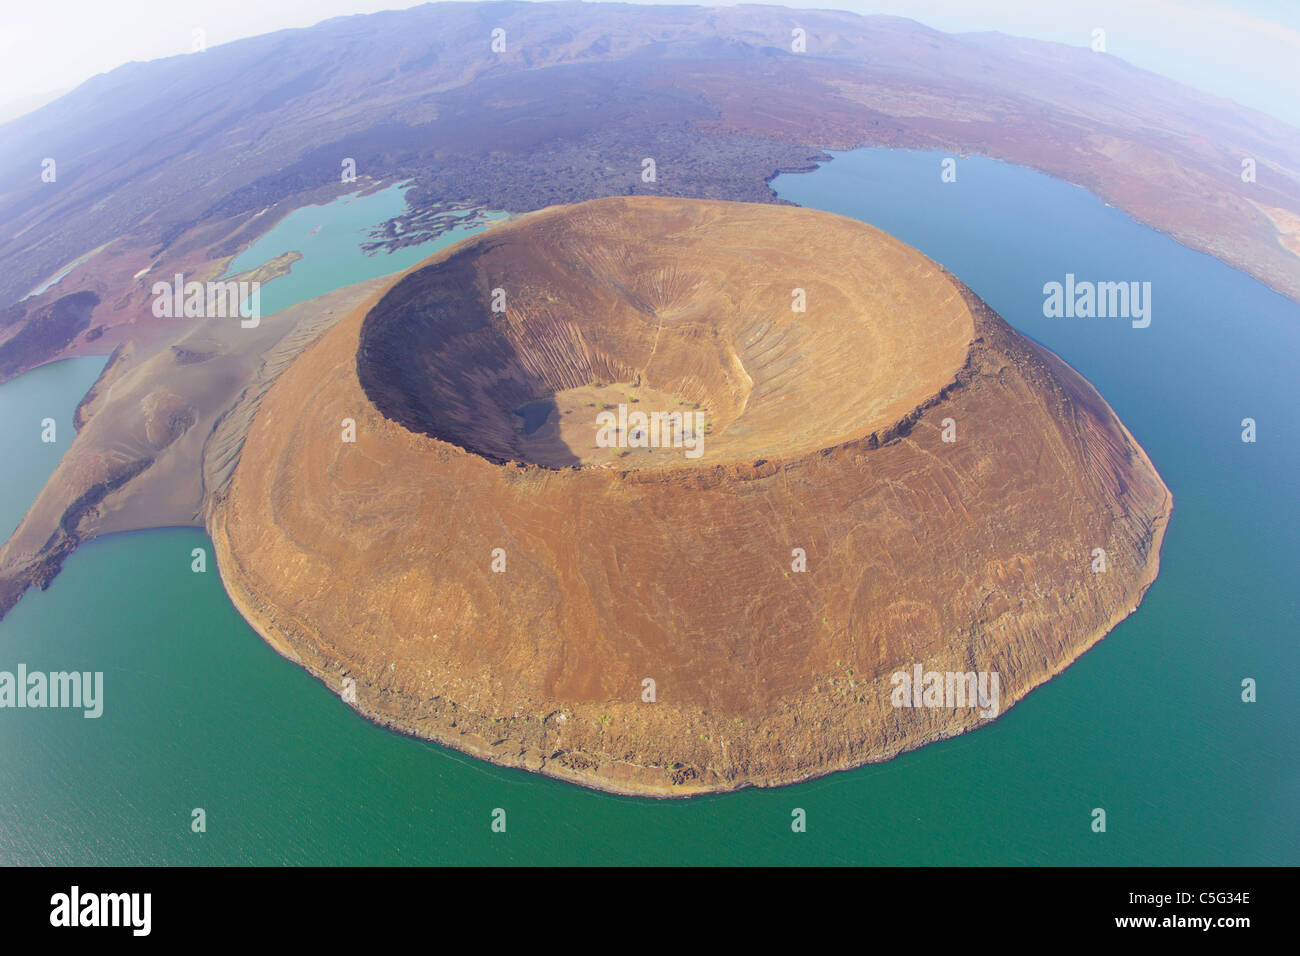 Lake Turkana Is Situated In The Great Rift Valley In KenyaIt Is - What is the largest desert in the world